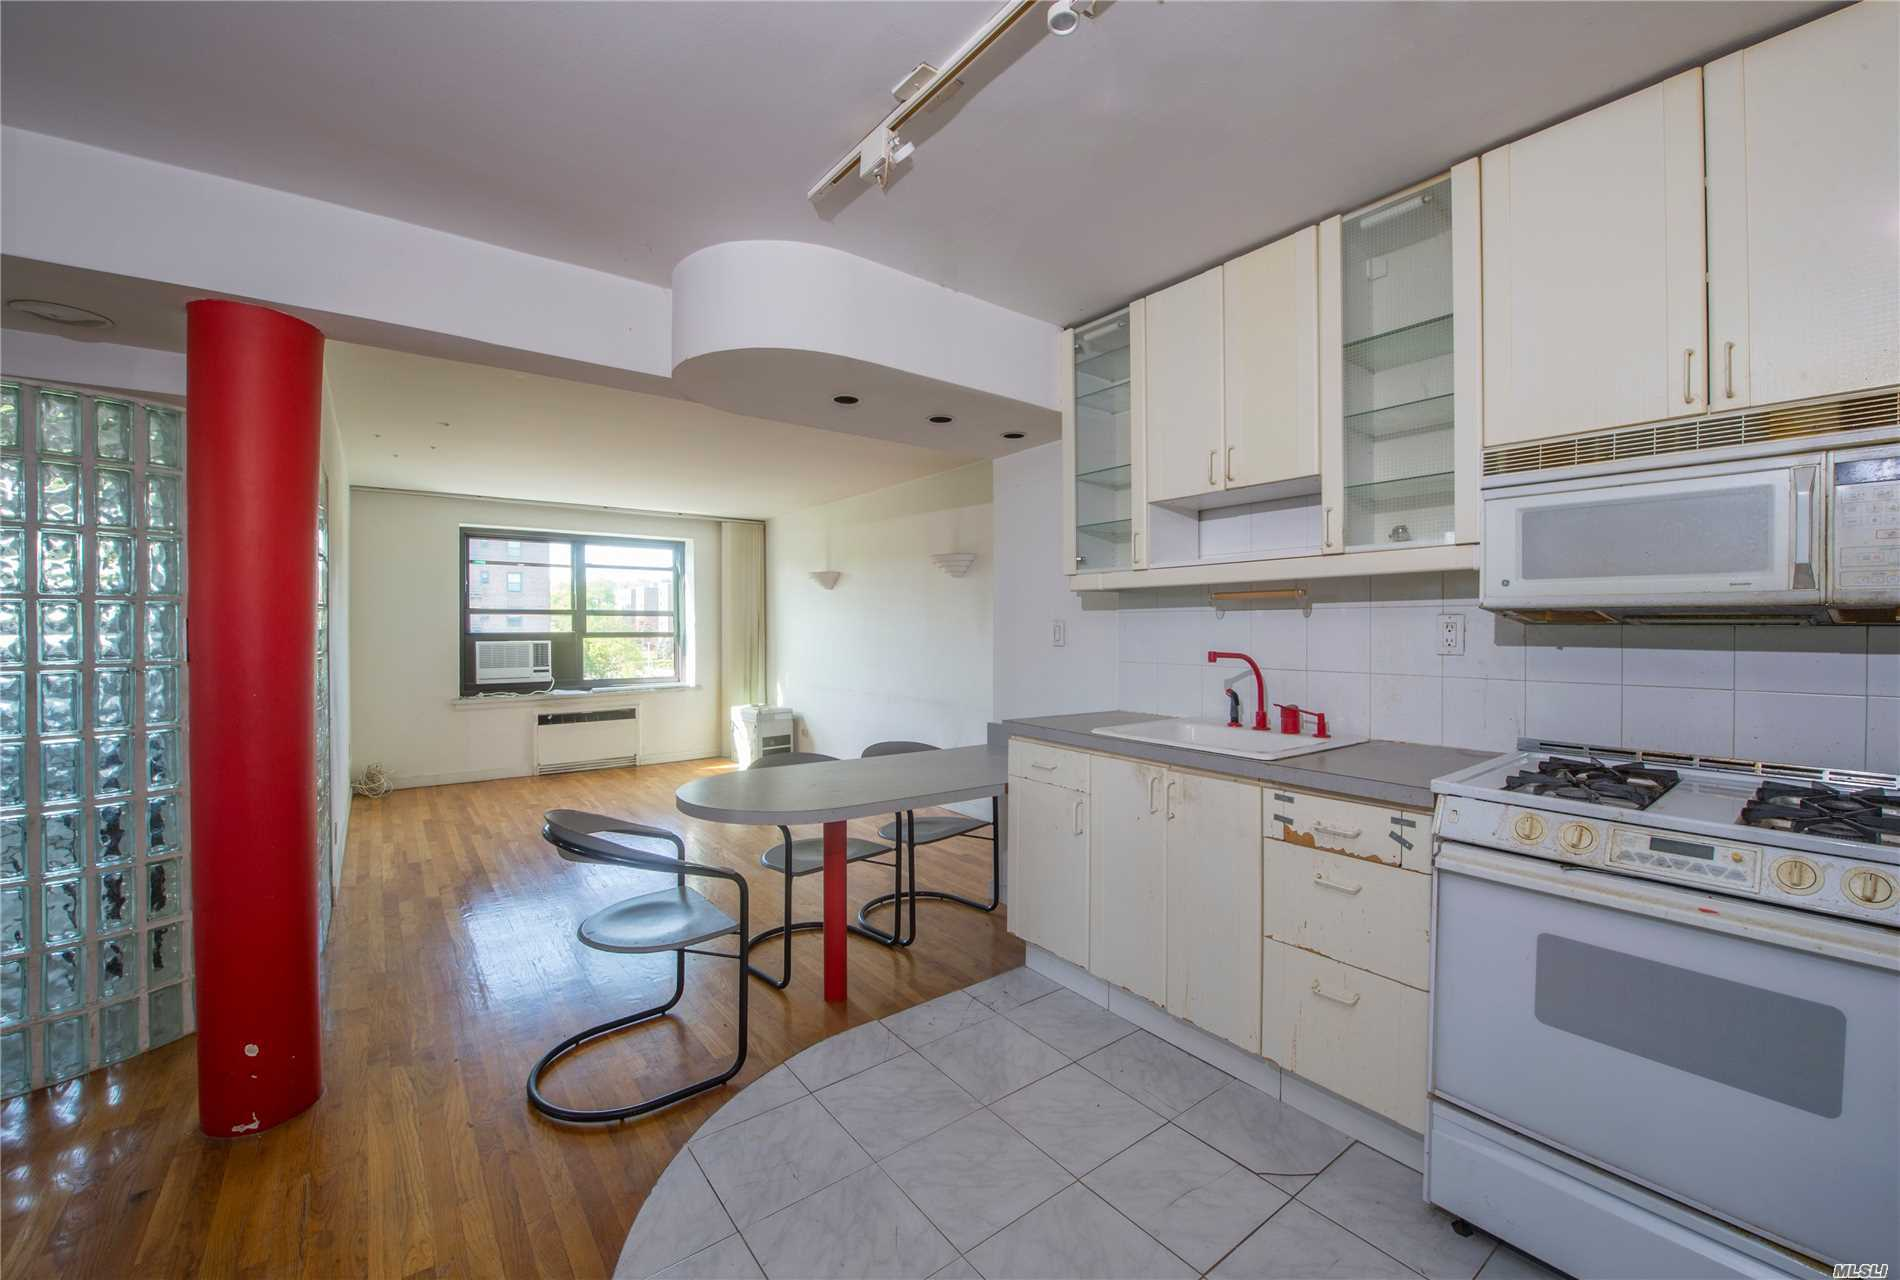 sun filled corner spacious 1 Bedroom & 1 Bath Coop With East Exposures, open Eat-In Kitchen, two New A/C's, Hardwood Floors Throughout, Updated Bathroom, Spacious Bedroom And Affordable Maintenance. Amenities Include Olympic Size Swimming Pool, Tennis Courts, Storage And Parking. Ps 205 Is Blocks Away As Is Jhs  It Has An Onsite Outdoor Pool, Basket Ball Court And Playground. 24 Hour Security, Close To Public Transportation And Shopping. Maintenance Includes Re Taxes, Water & Heat.